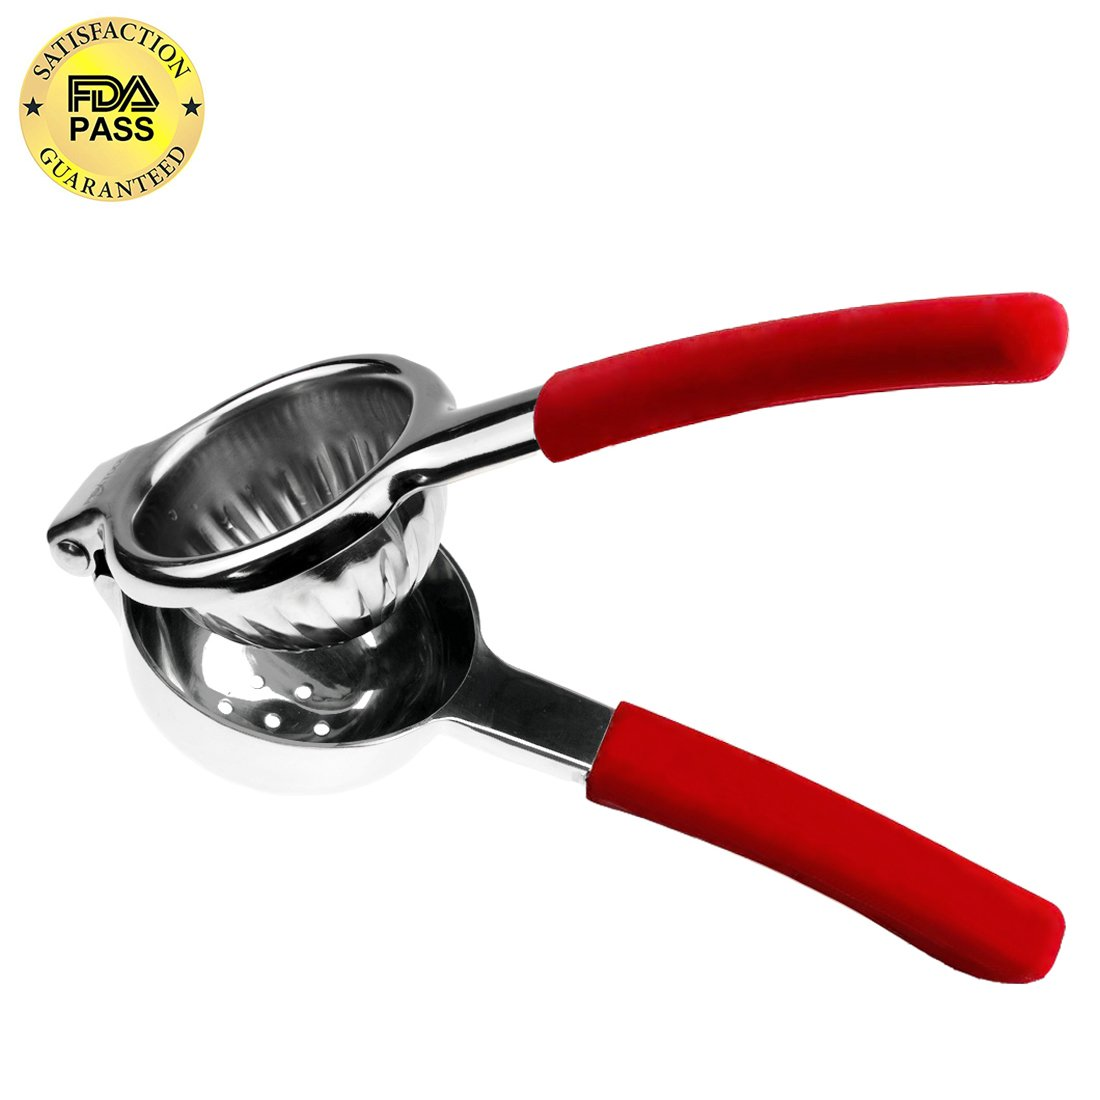 Vilapur Lemon Squeezer, Top Rate Premium Quality 304 Stainless Steel with Silicone Handles (Red)